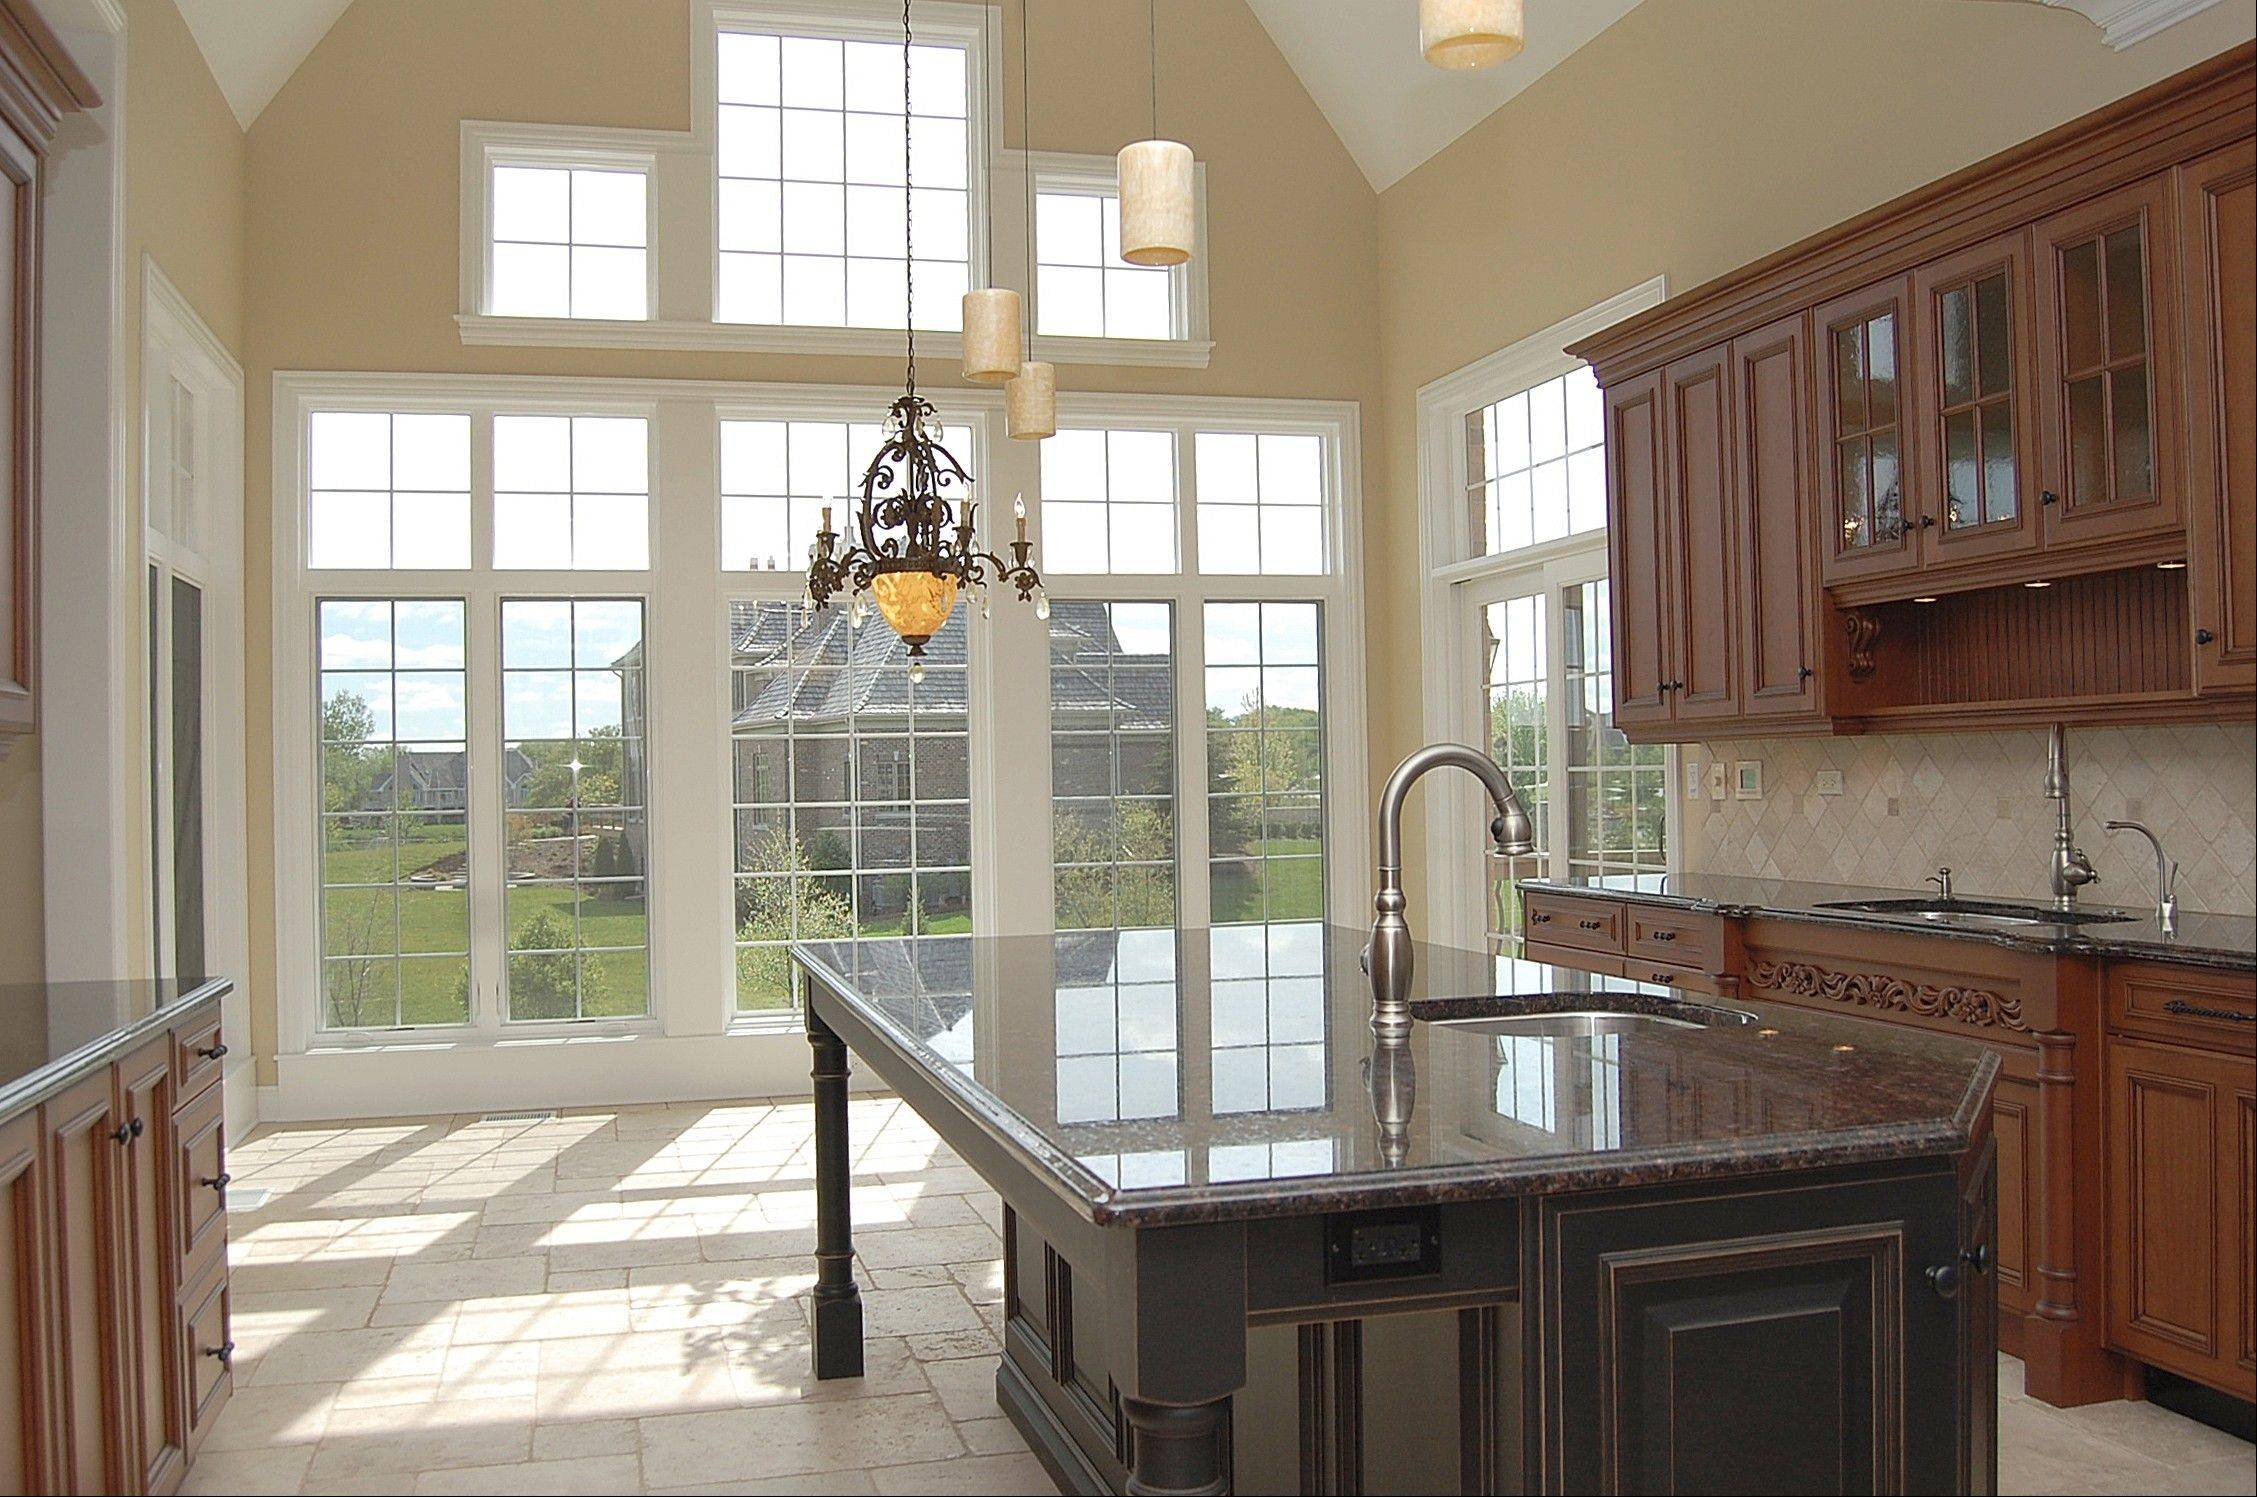 The kitchen features a wall of windows to create a bright, light environment.